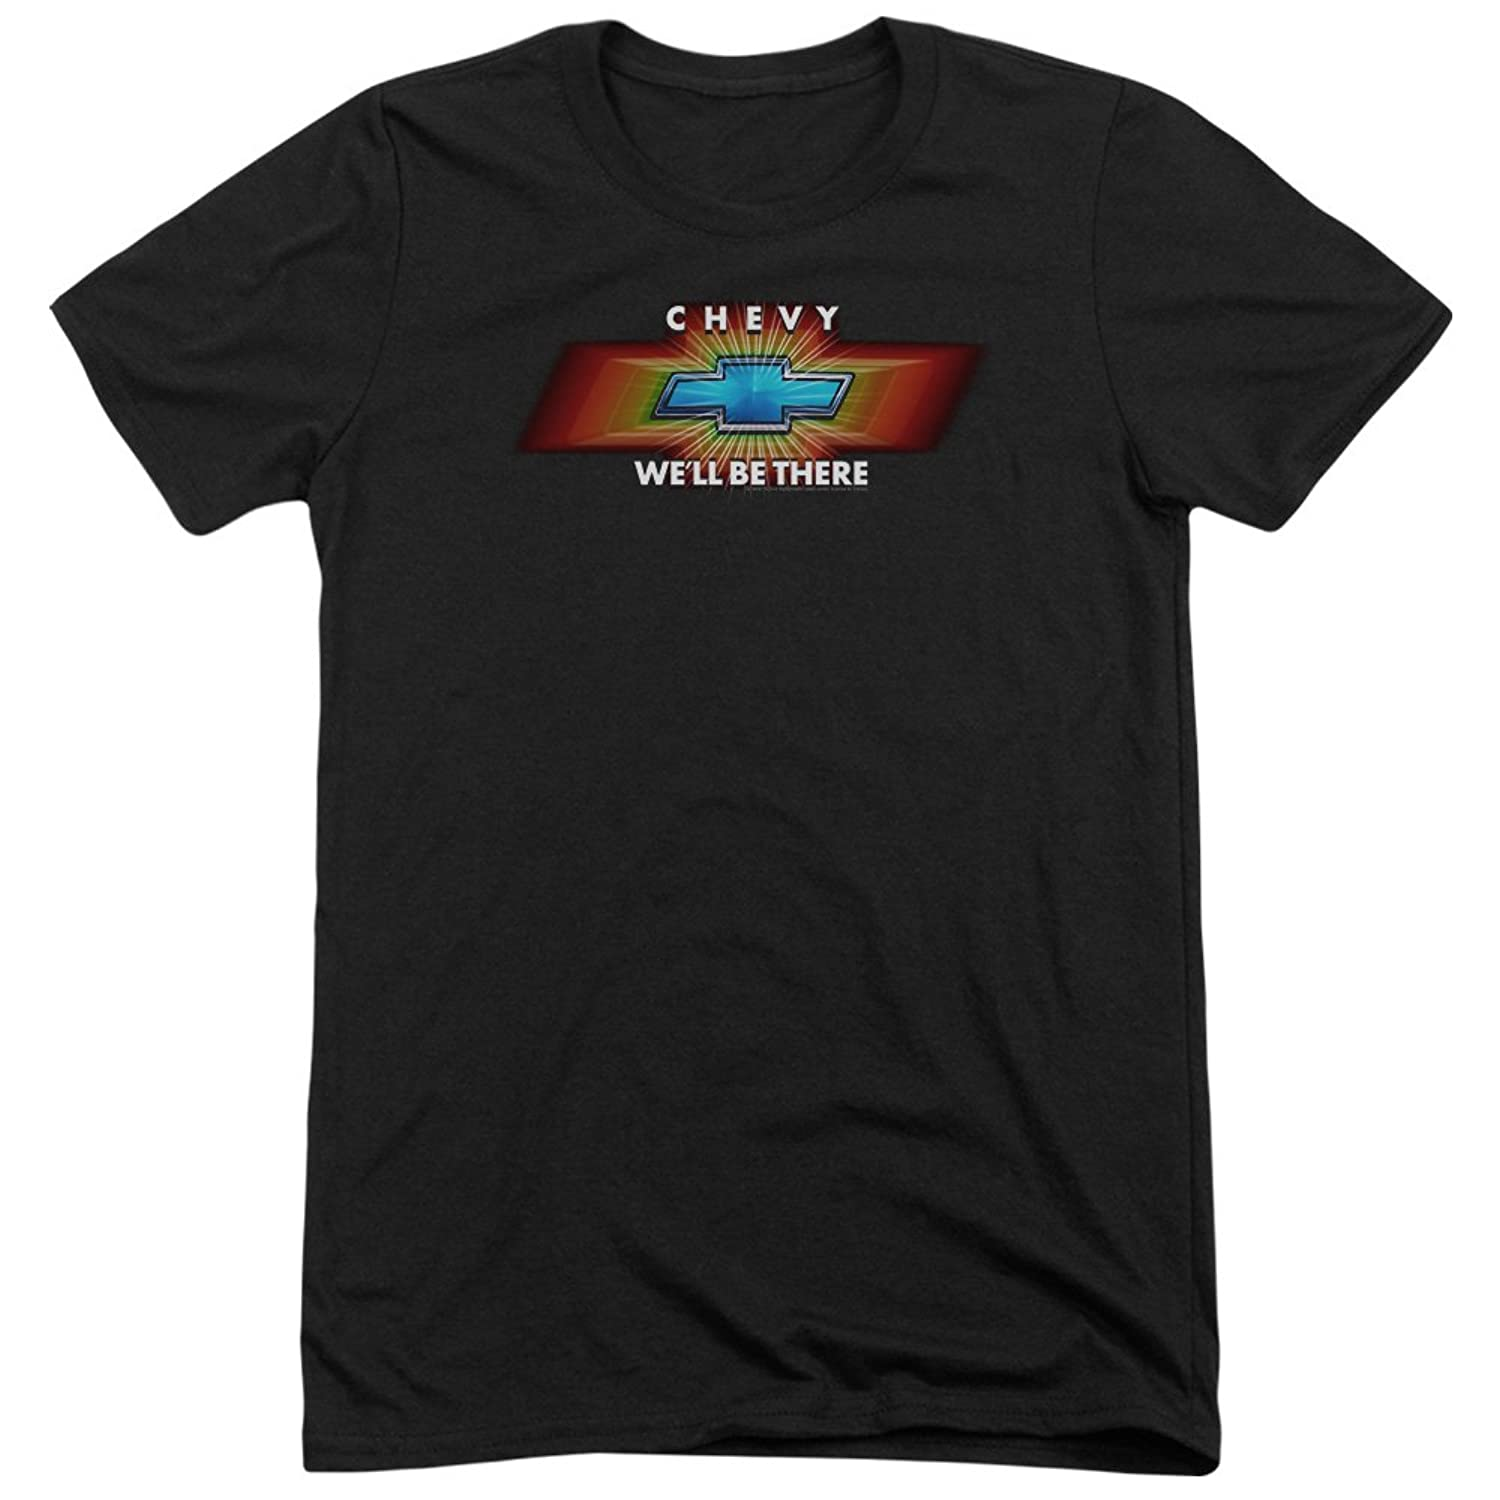 Chevrolet Men's Chevy WeLl Be There Tv Spot Tri-Blend T-Shirt